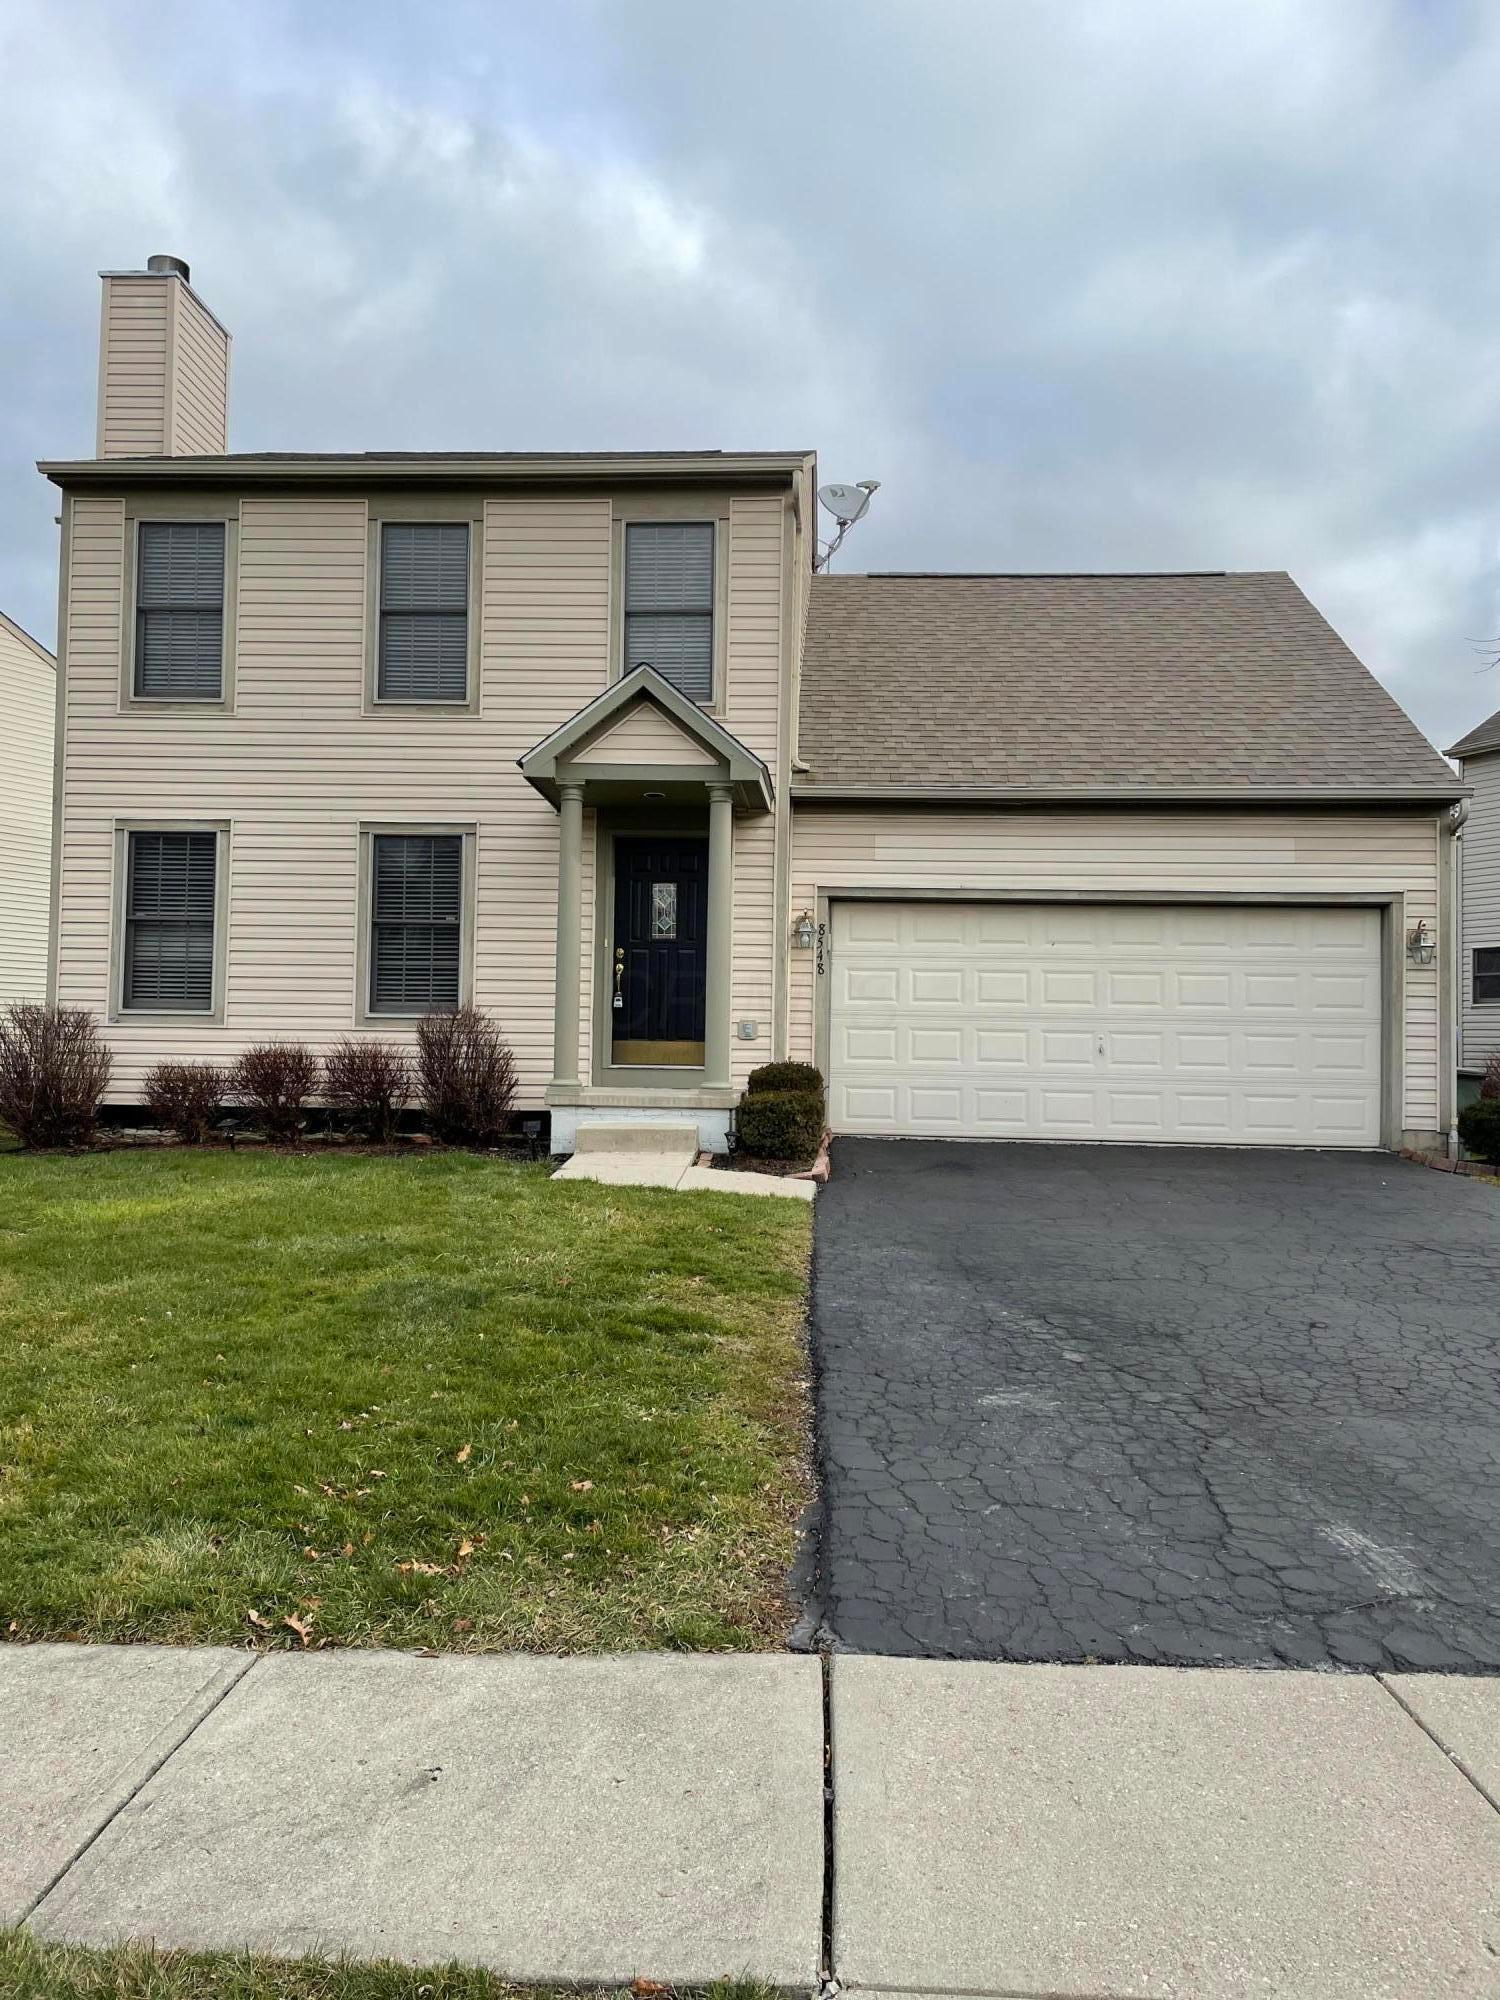 8548 Olenbrook Drive, Lewis Center, Ohio 43035, 4 Bedrooms Bedrooms, ,3 BathroomsBathrooms,Residential,For Sale,Olenbrook,221000620